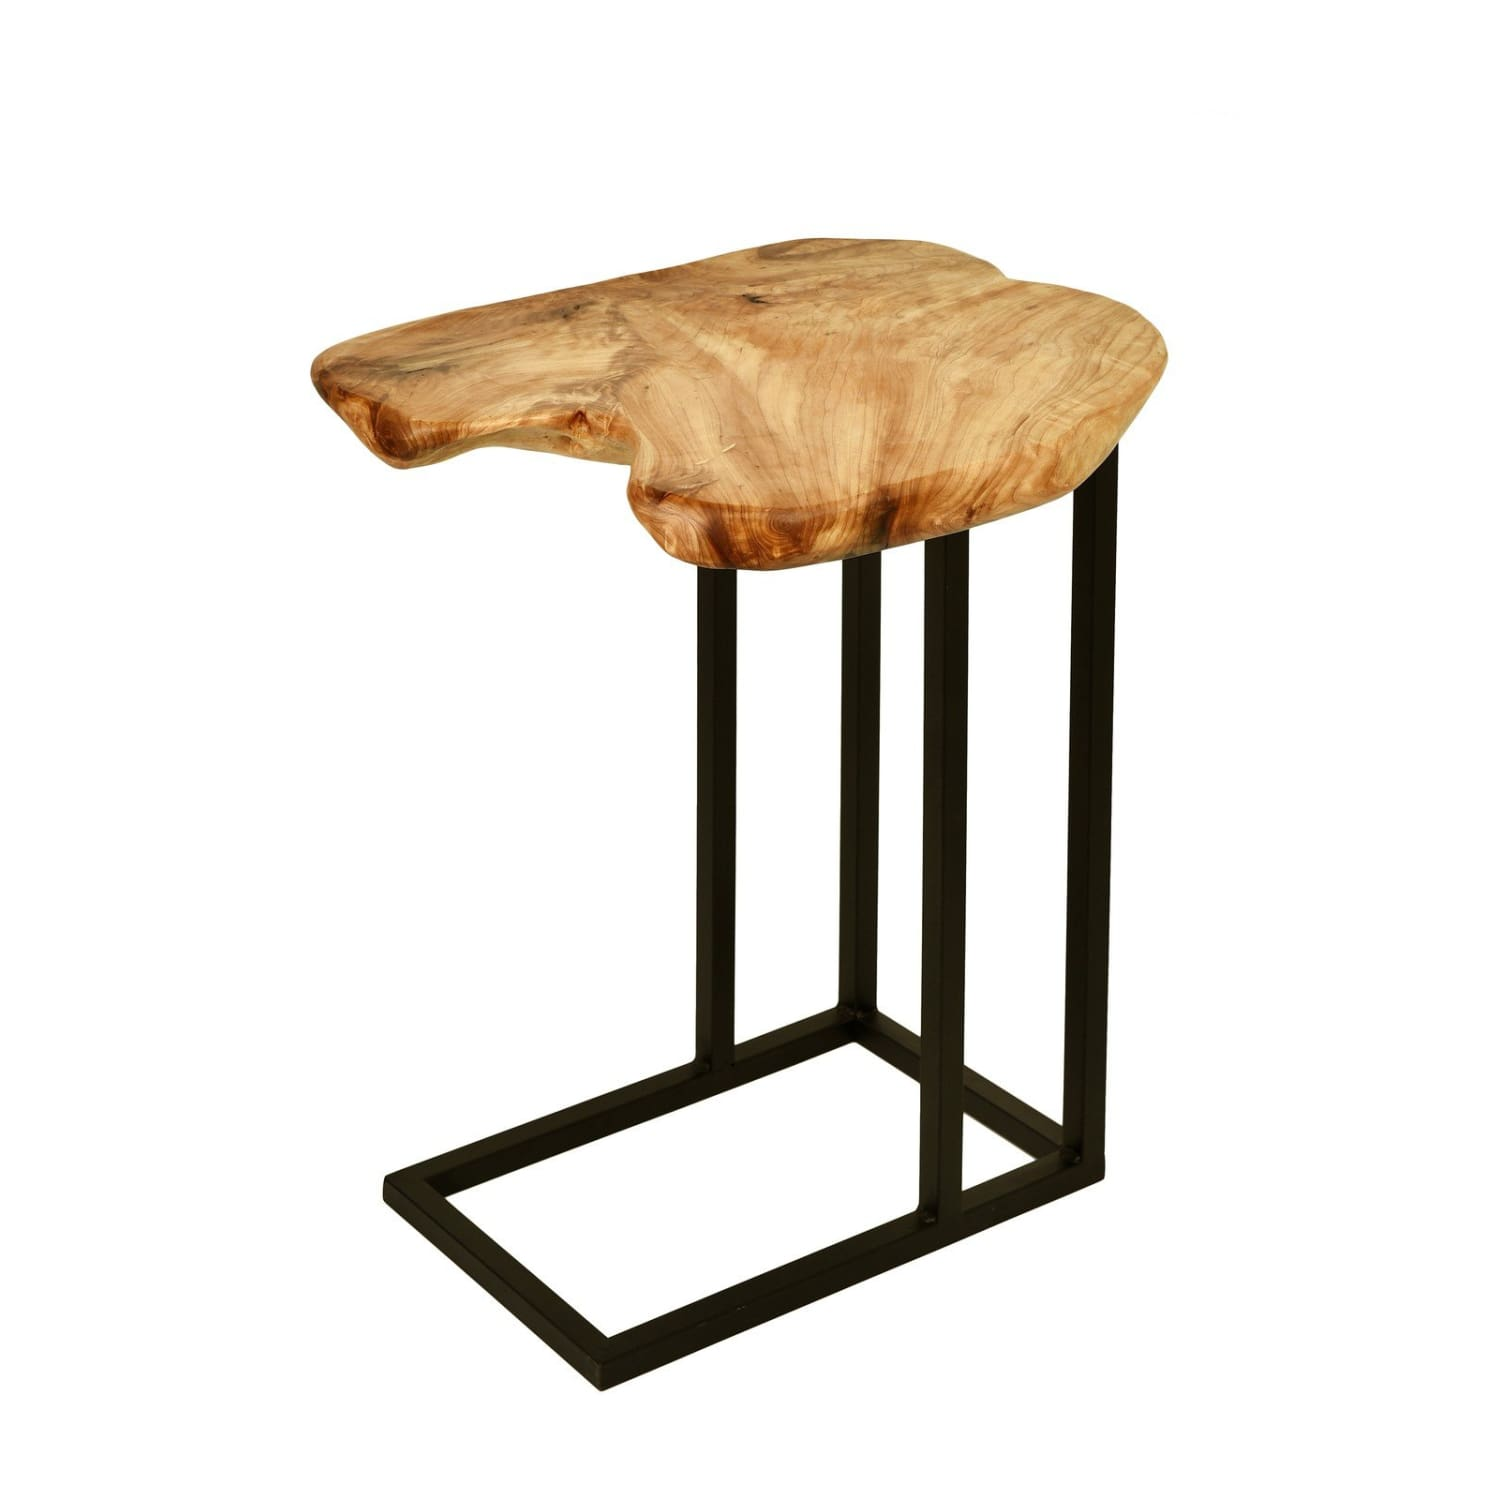 Table d'appoint - Woody 610 Naturel